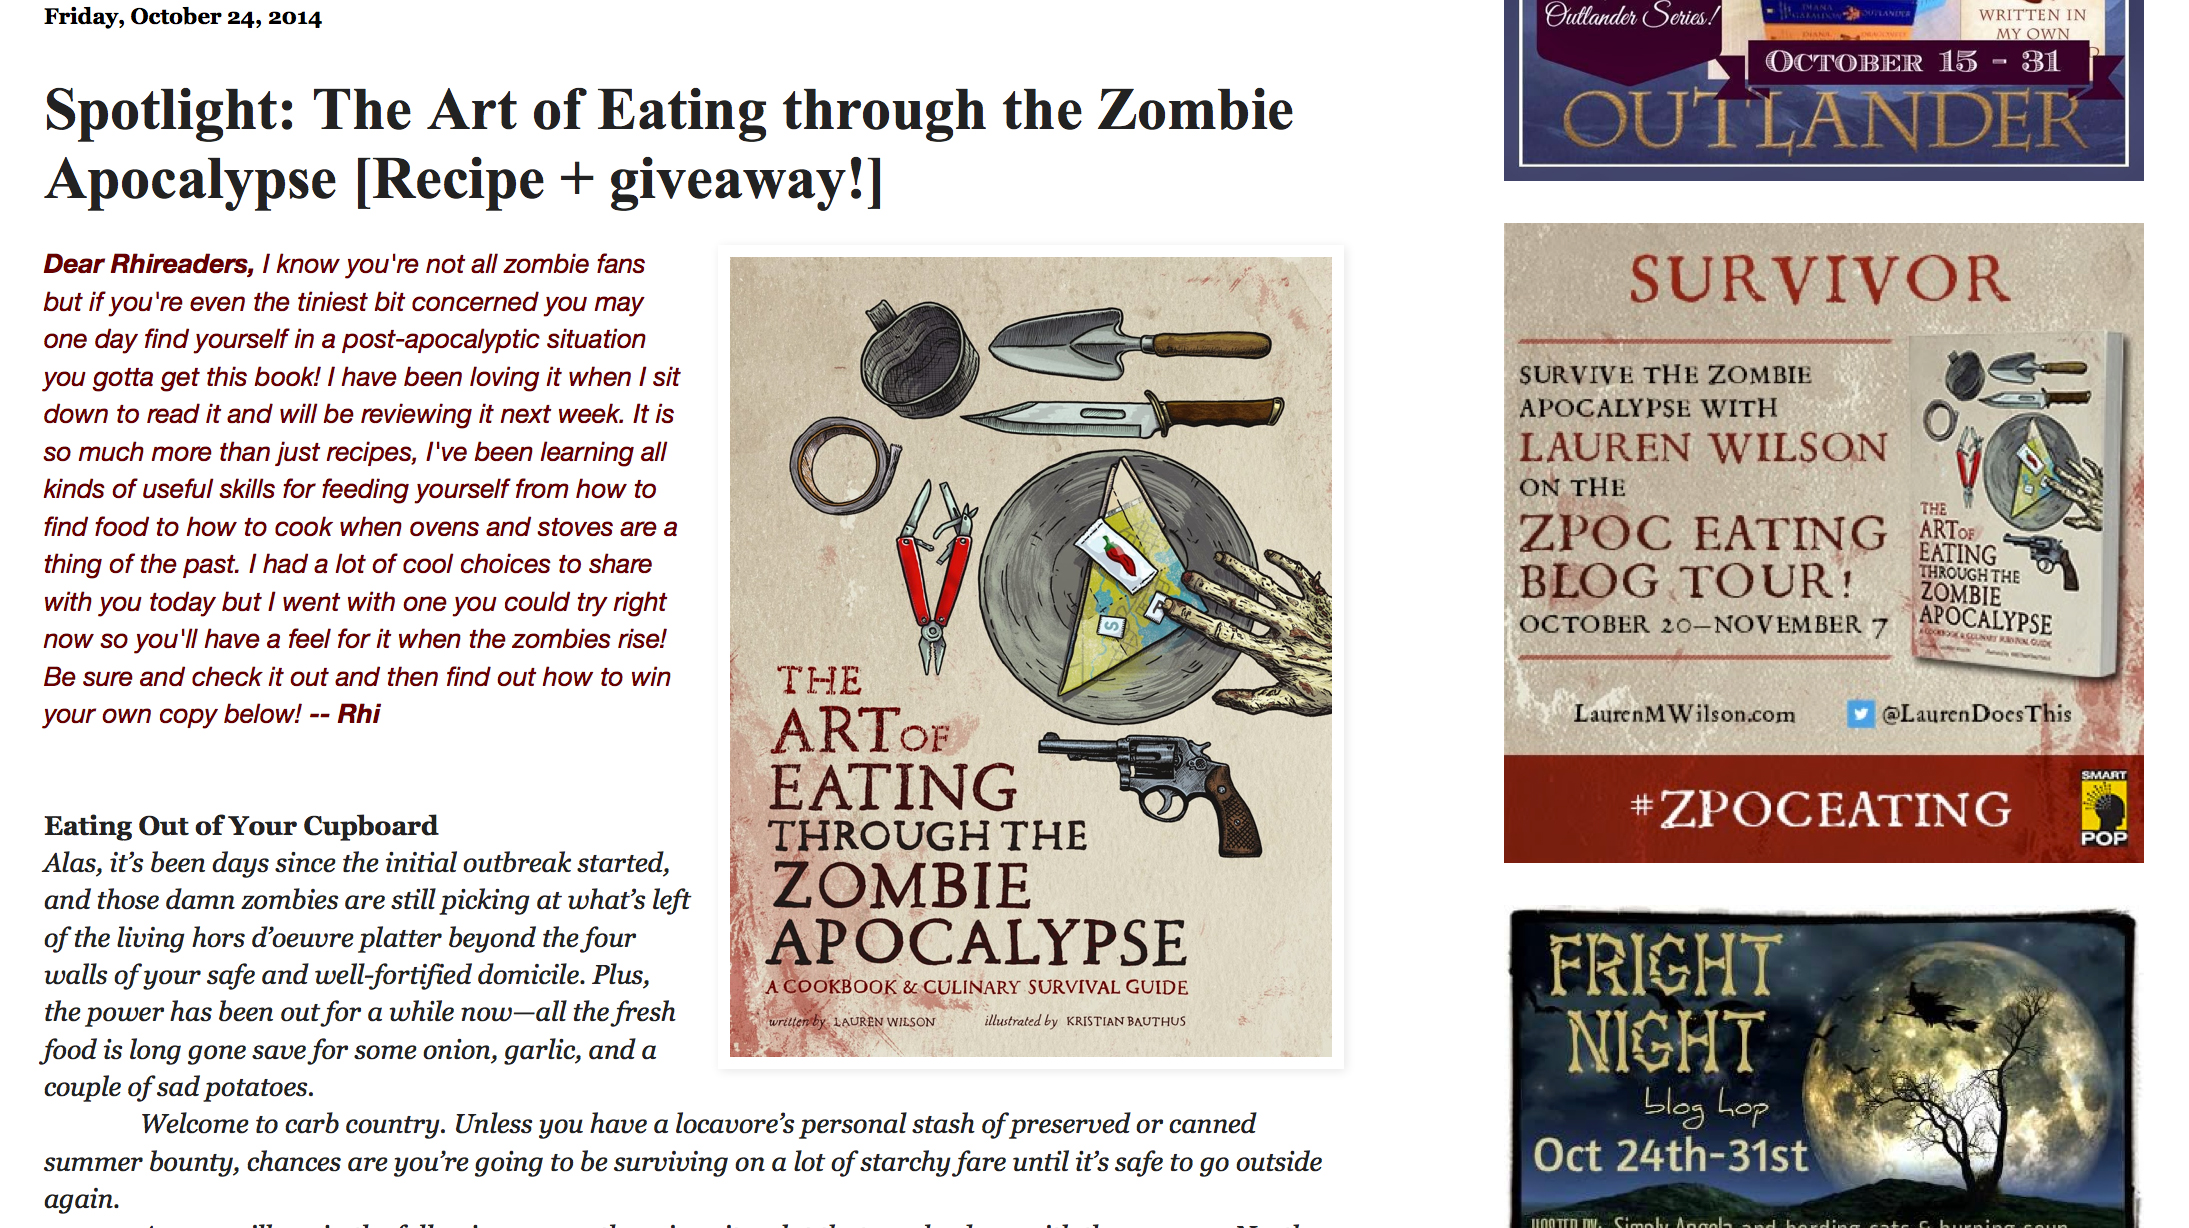 The Art of Eating Through the Zombie Apocalypse giveaway on RhiReading